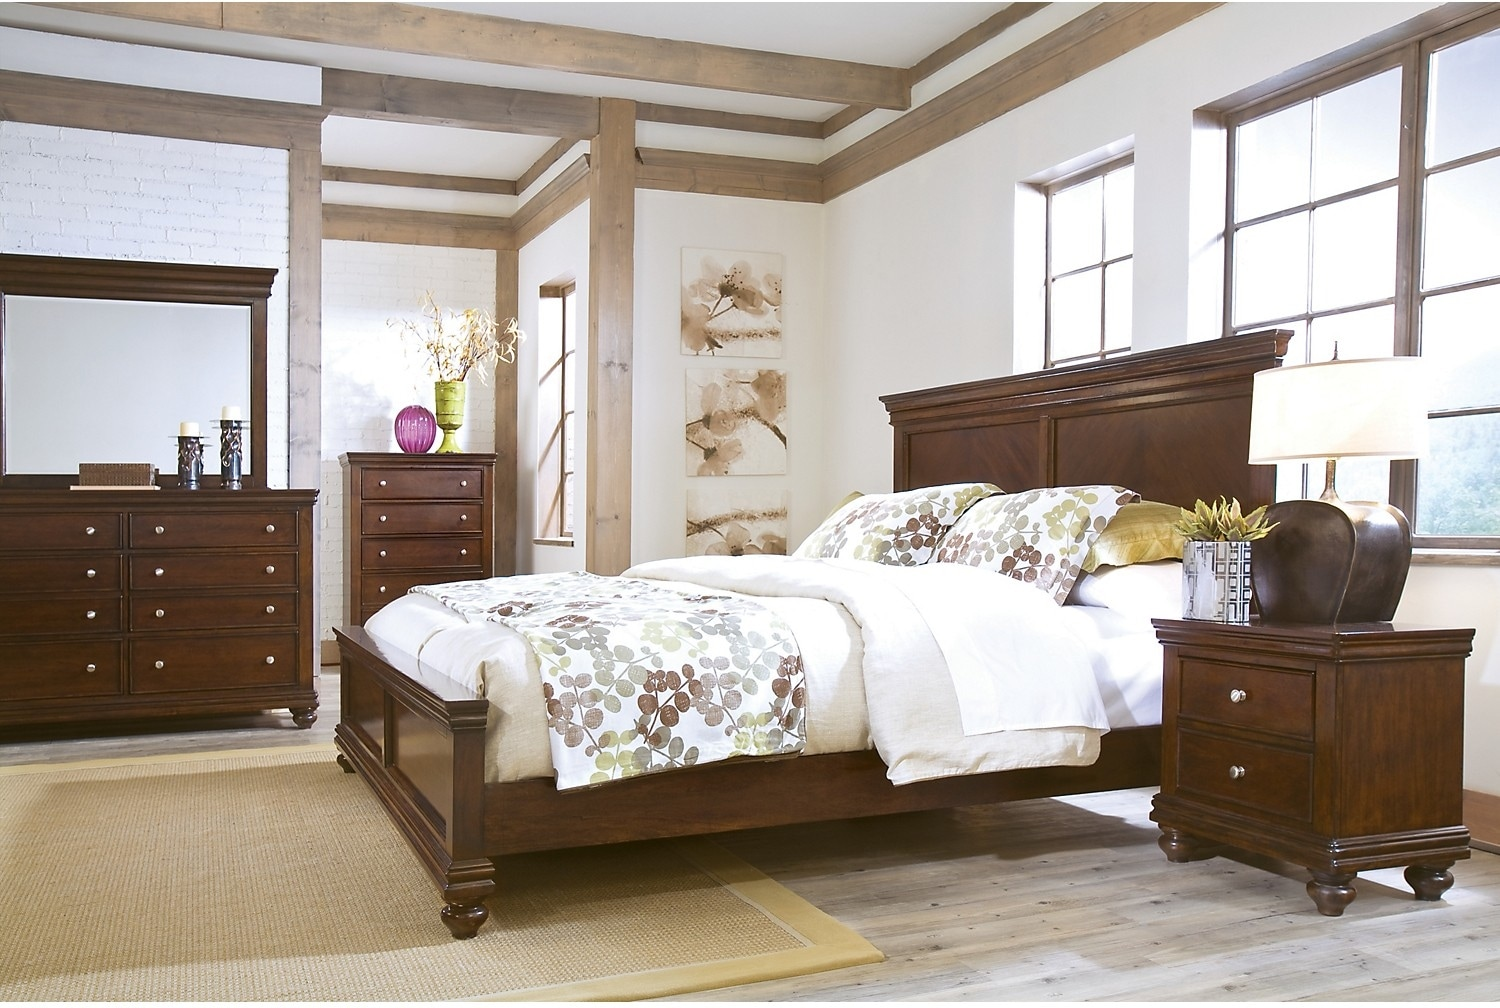 Elegant wood modern master bedroom set feat wood grain cincinnati ohio - North